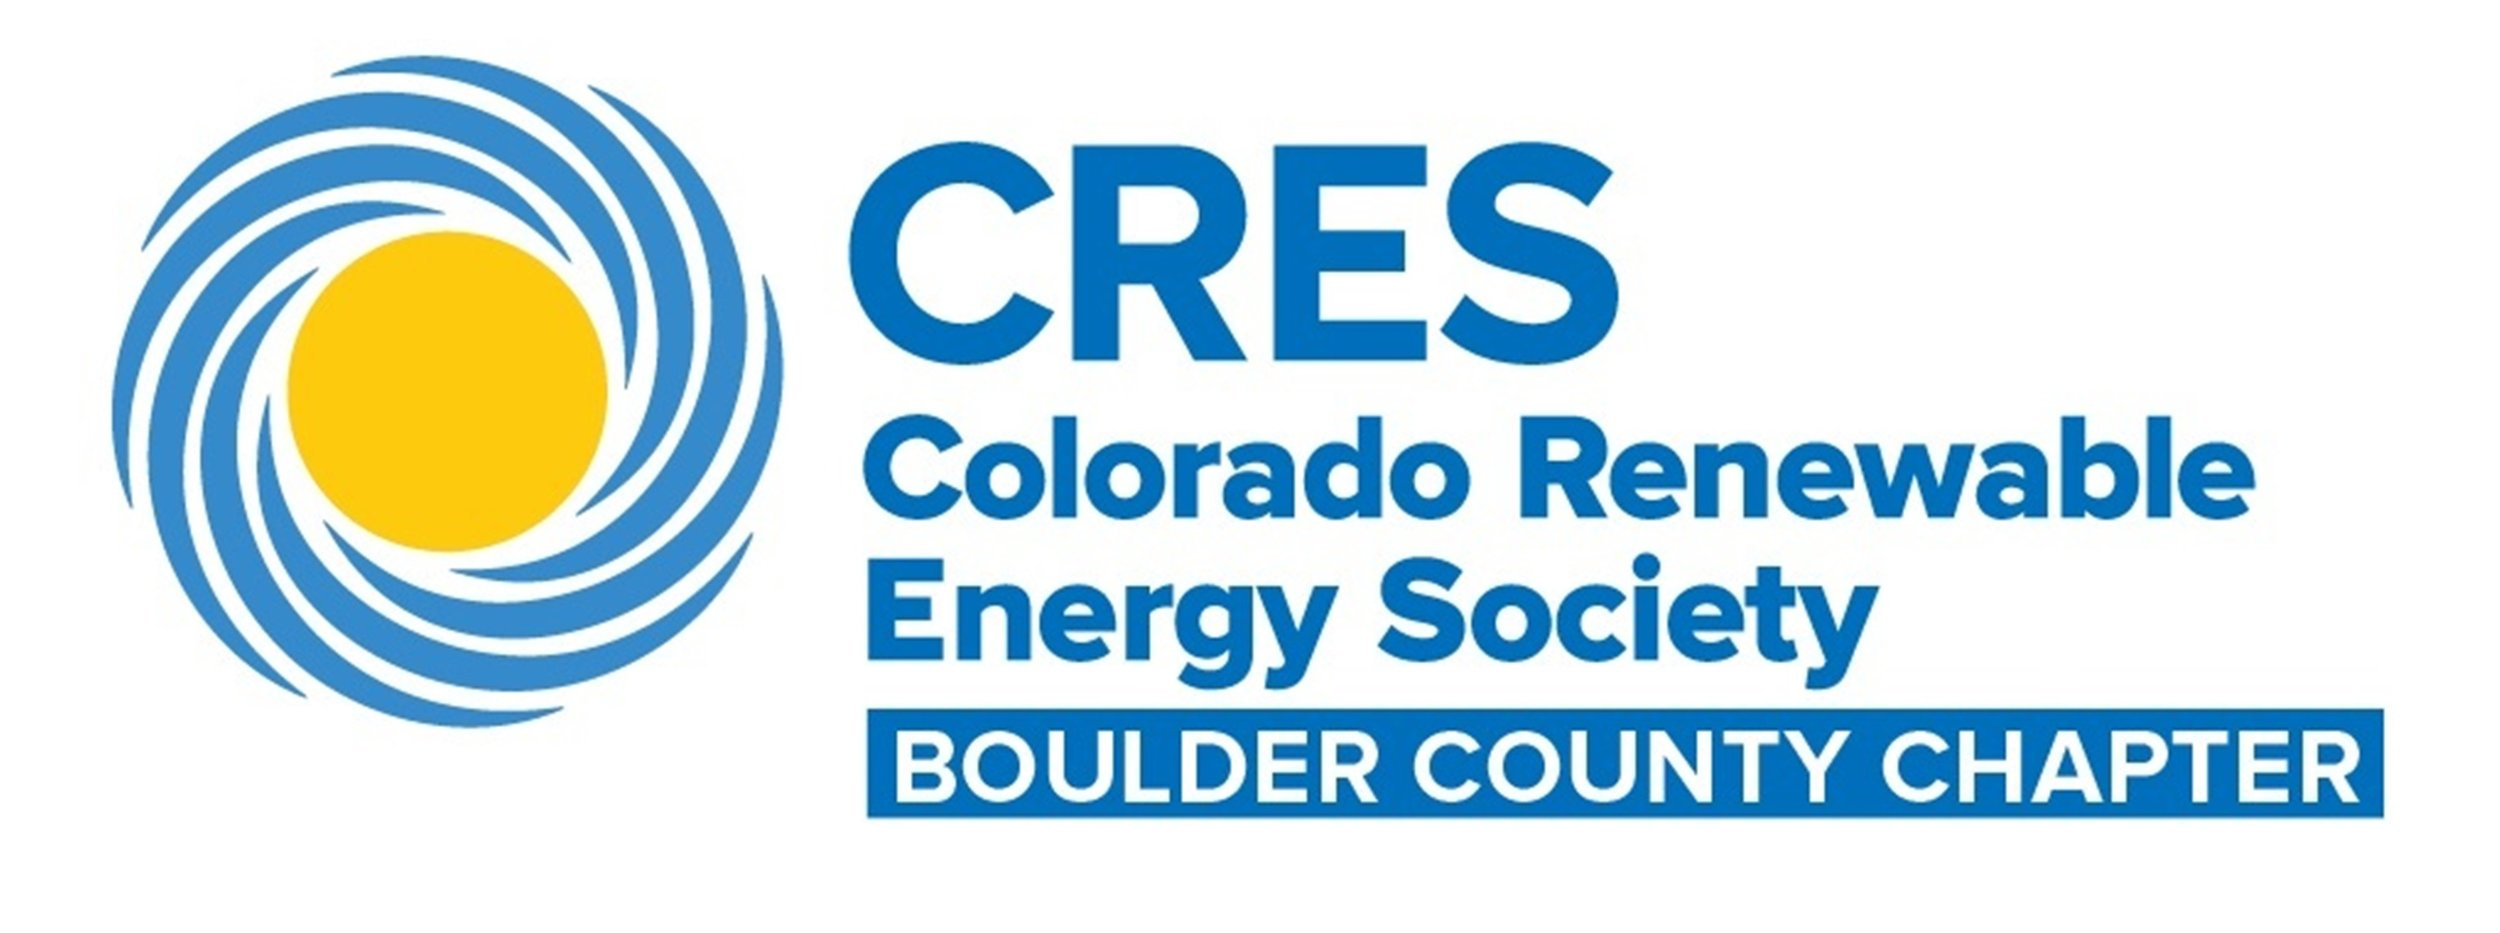 CRES-Boulder_Chapter larger.jpg